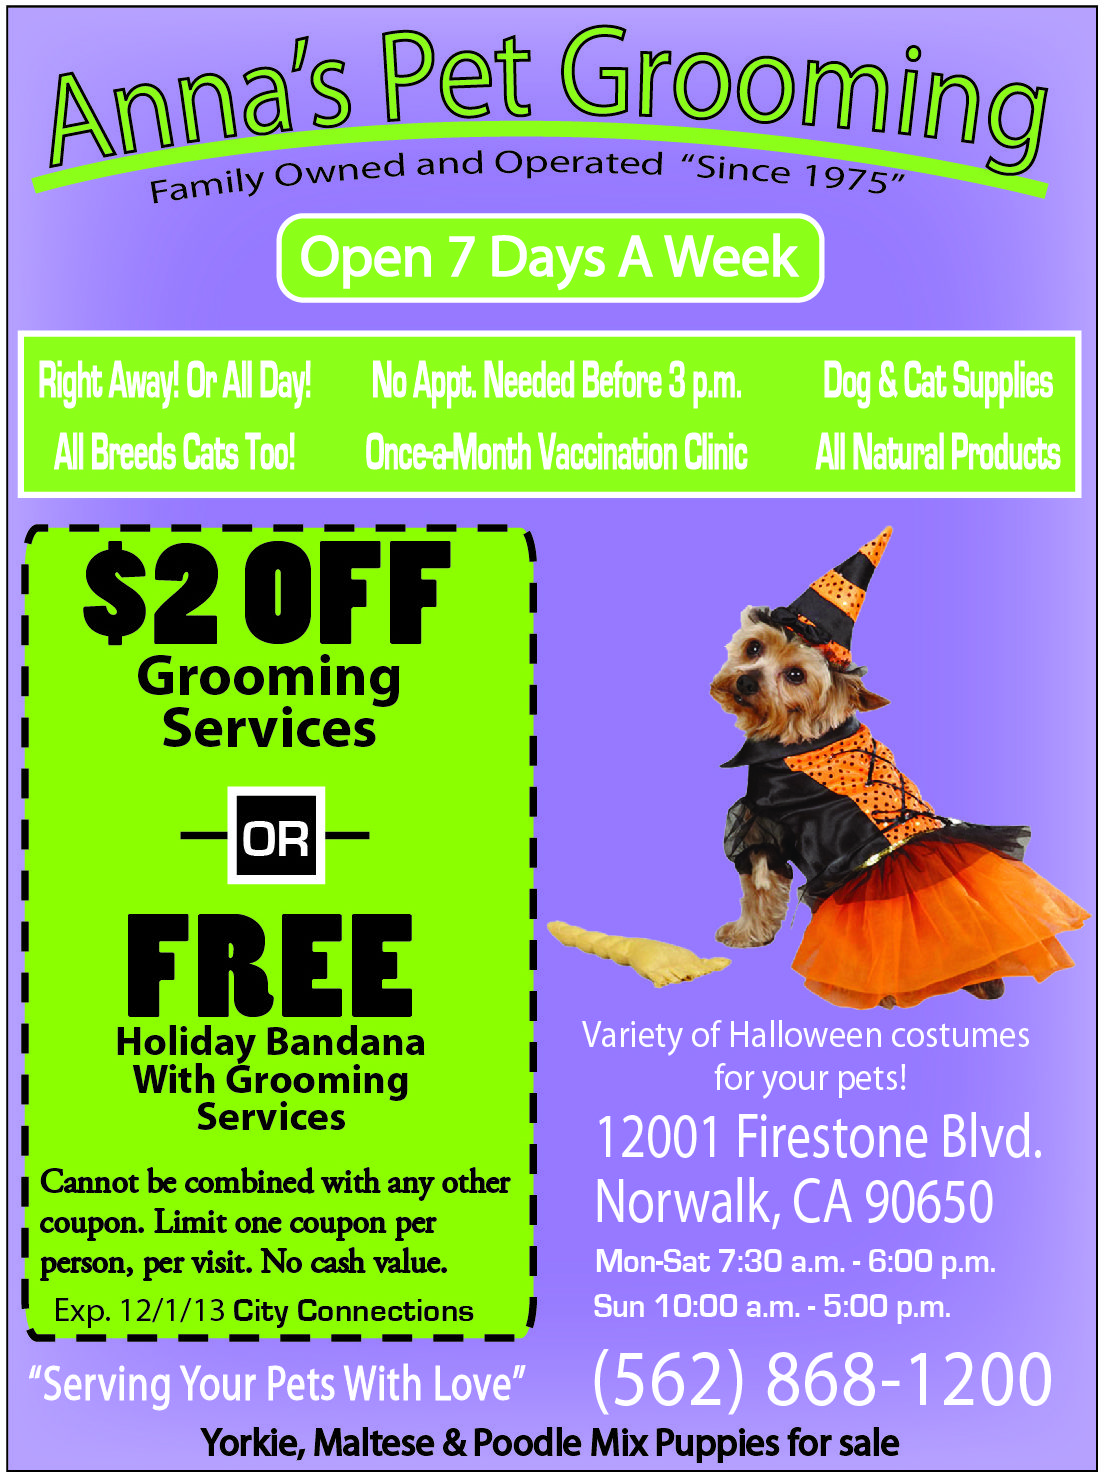 Serving Your Pets With Love Anna S Pet Grooming In Norwalk